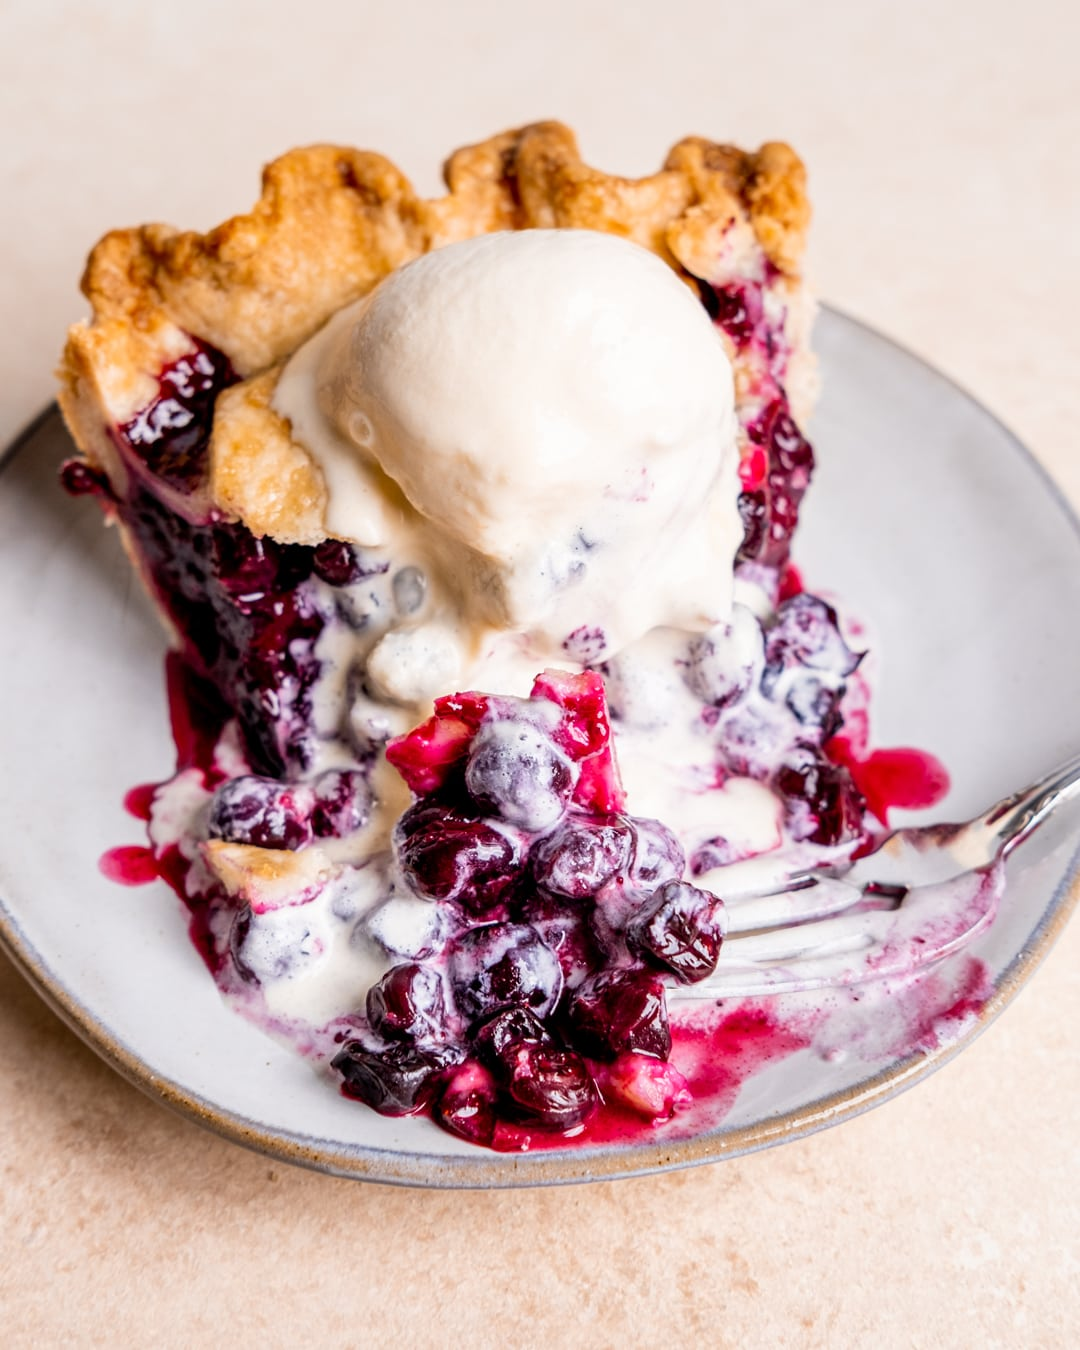 A bite cut out of blueberry pie with a scoop of vanilla ice cream melting on top